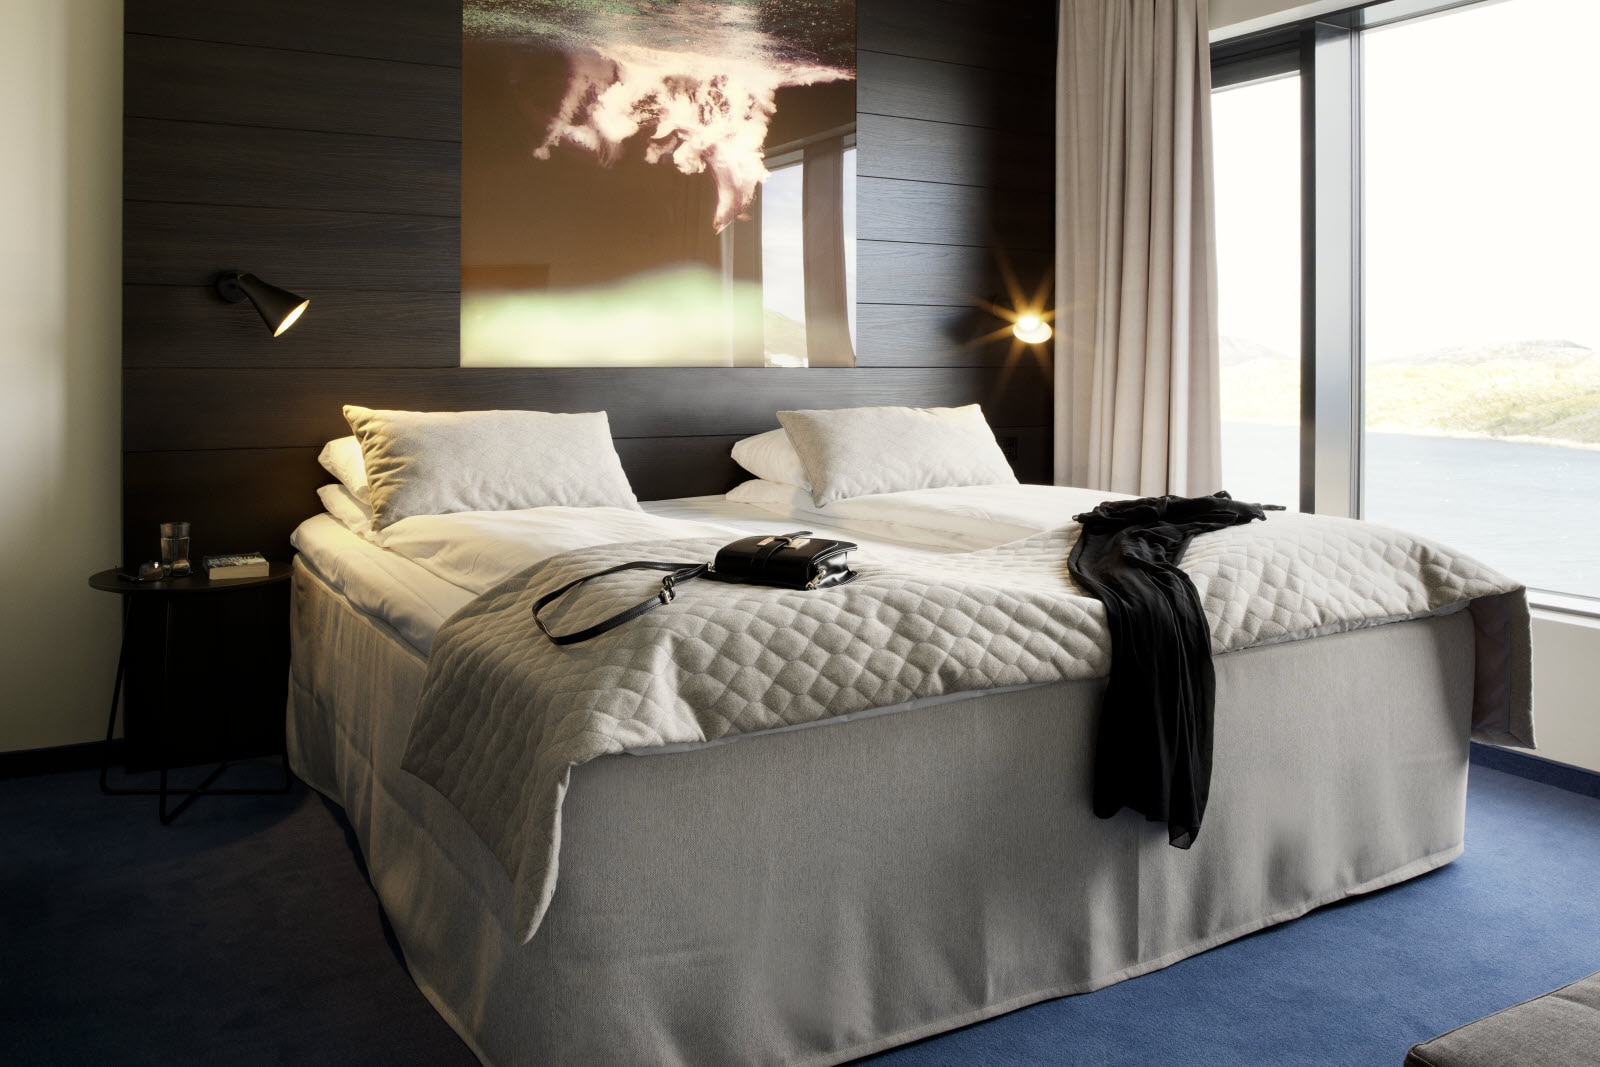 scandic-havet-room-mastersuite-3.jpg